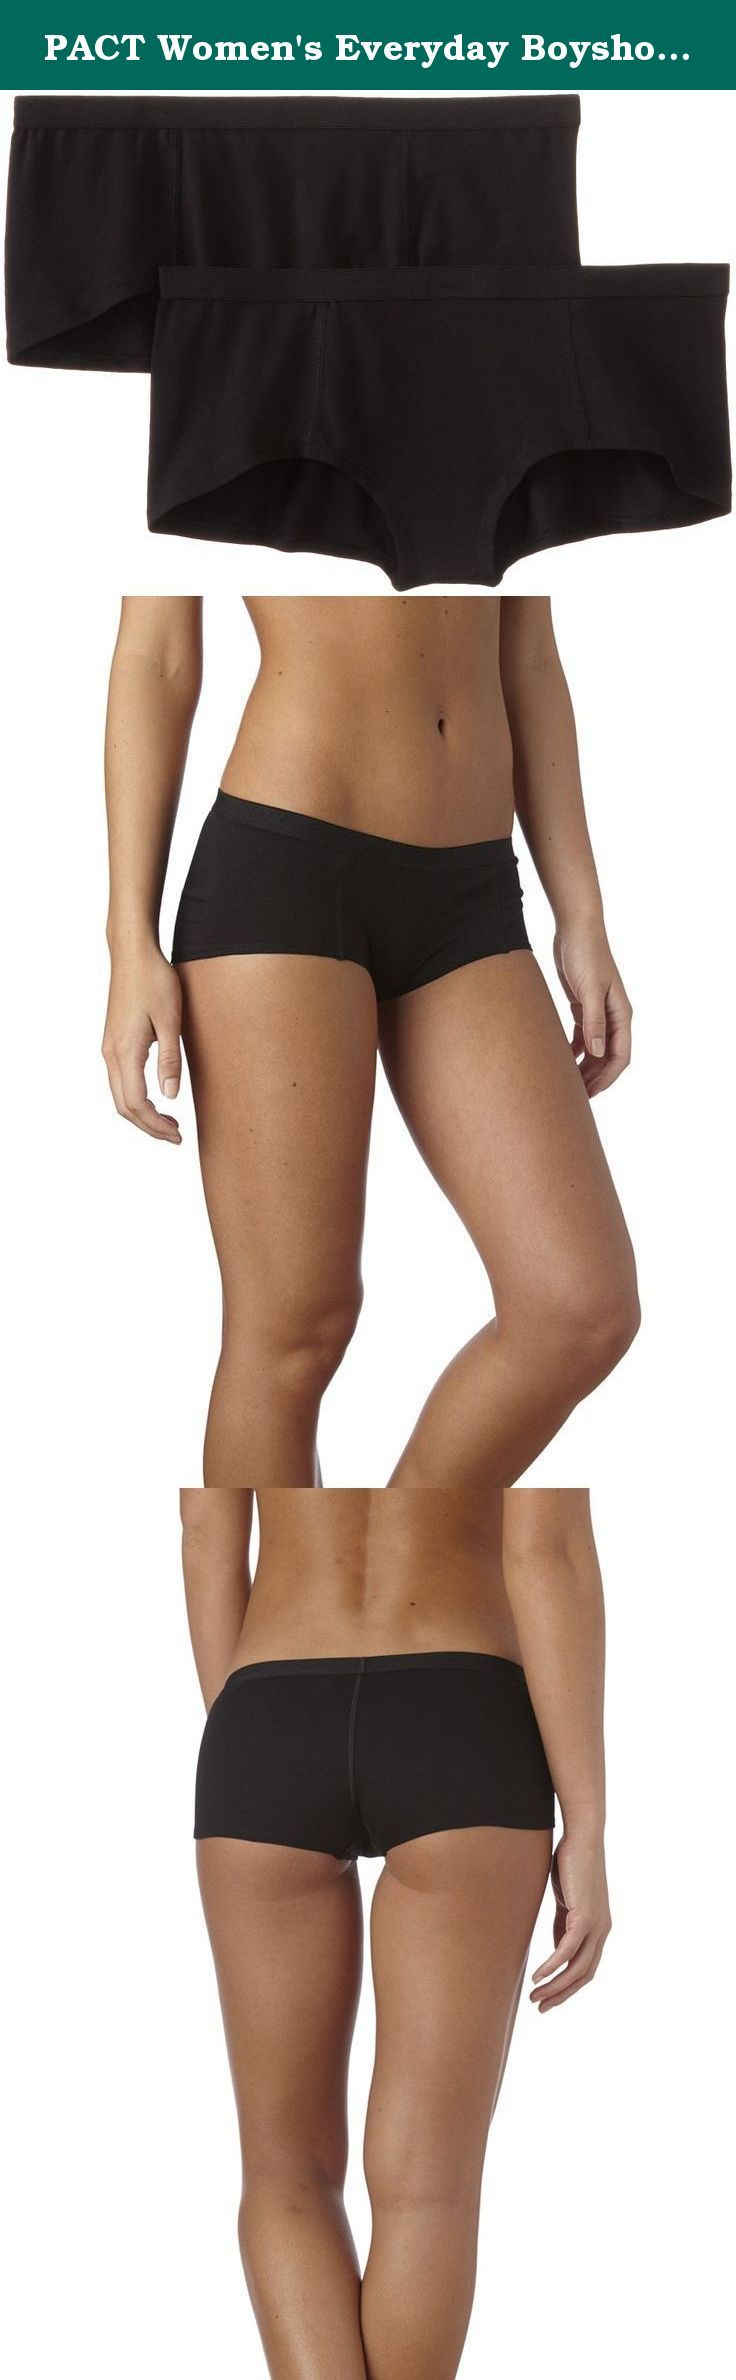 PACT Women's Everyday Boyshort 2-Pack, Black, X-Large. PACT is obsessed with a big idea: clothes that make the world a better place. Socks with soul, altruistic underwear, and other everyday essentials made with fabrics that feel good and go easy on the environment. The best part: with every purchase, you help PACT make a positive change in our world. For spring/summer 2014, PACT is going all the way back to the source - our farmers. In India, PACT organic cotton is produced by Chetna...